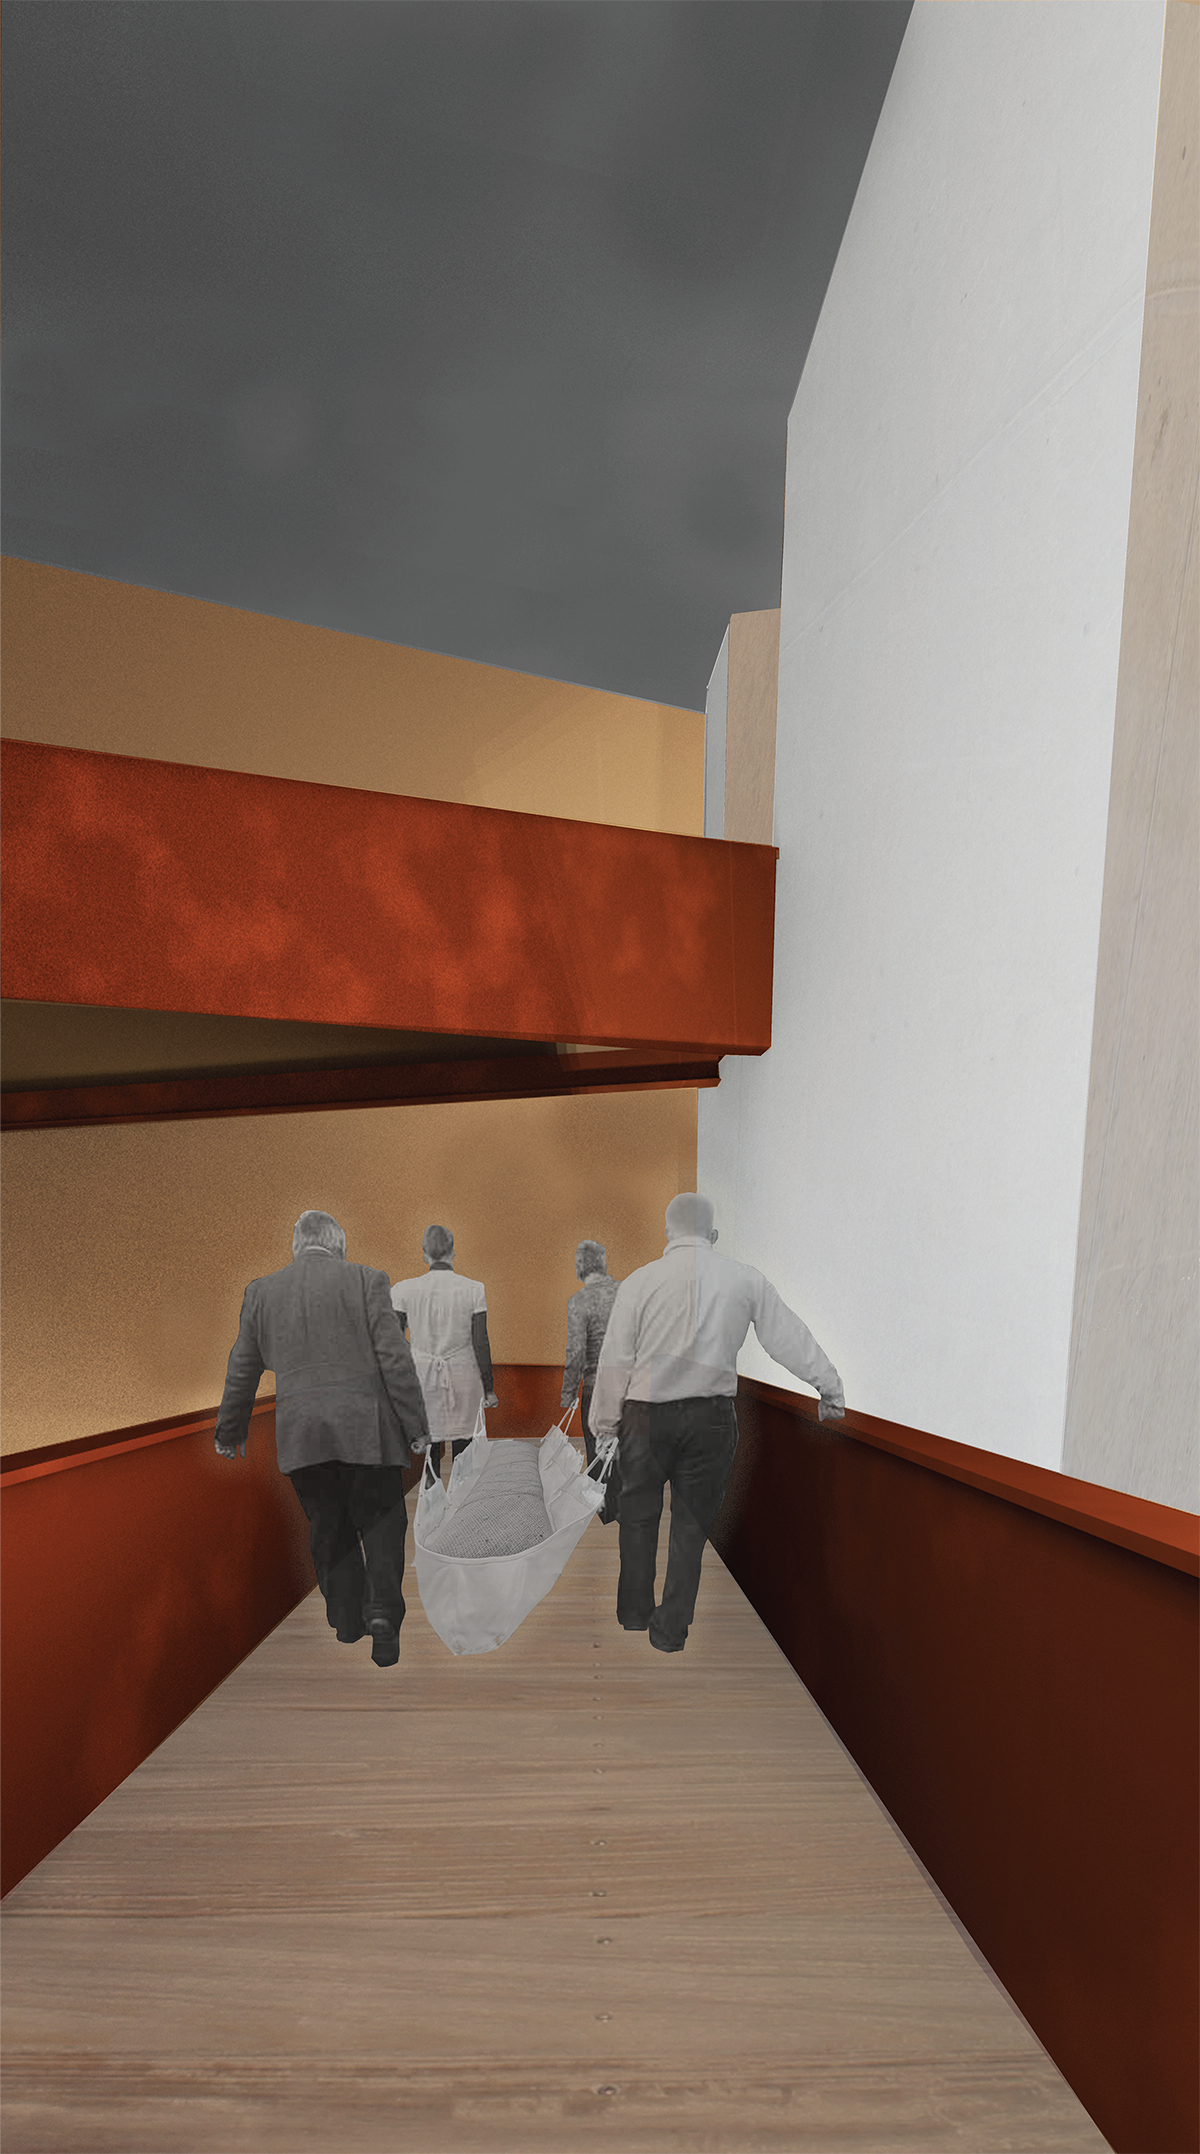 Rendering for the Urban Death Project (courtesy Katrina Spade)